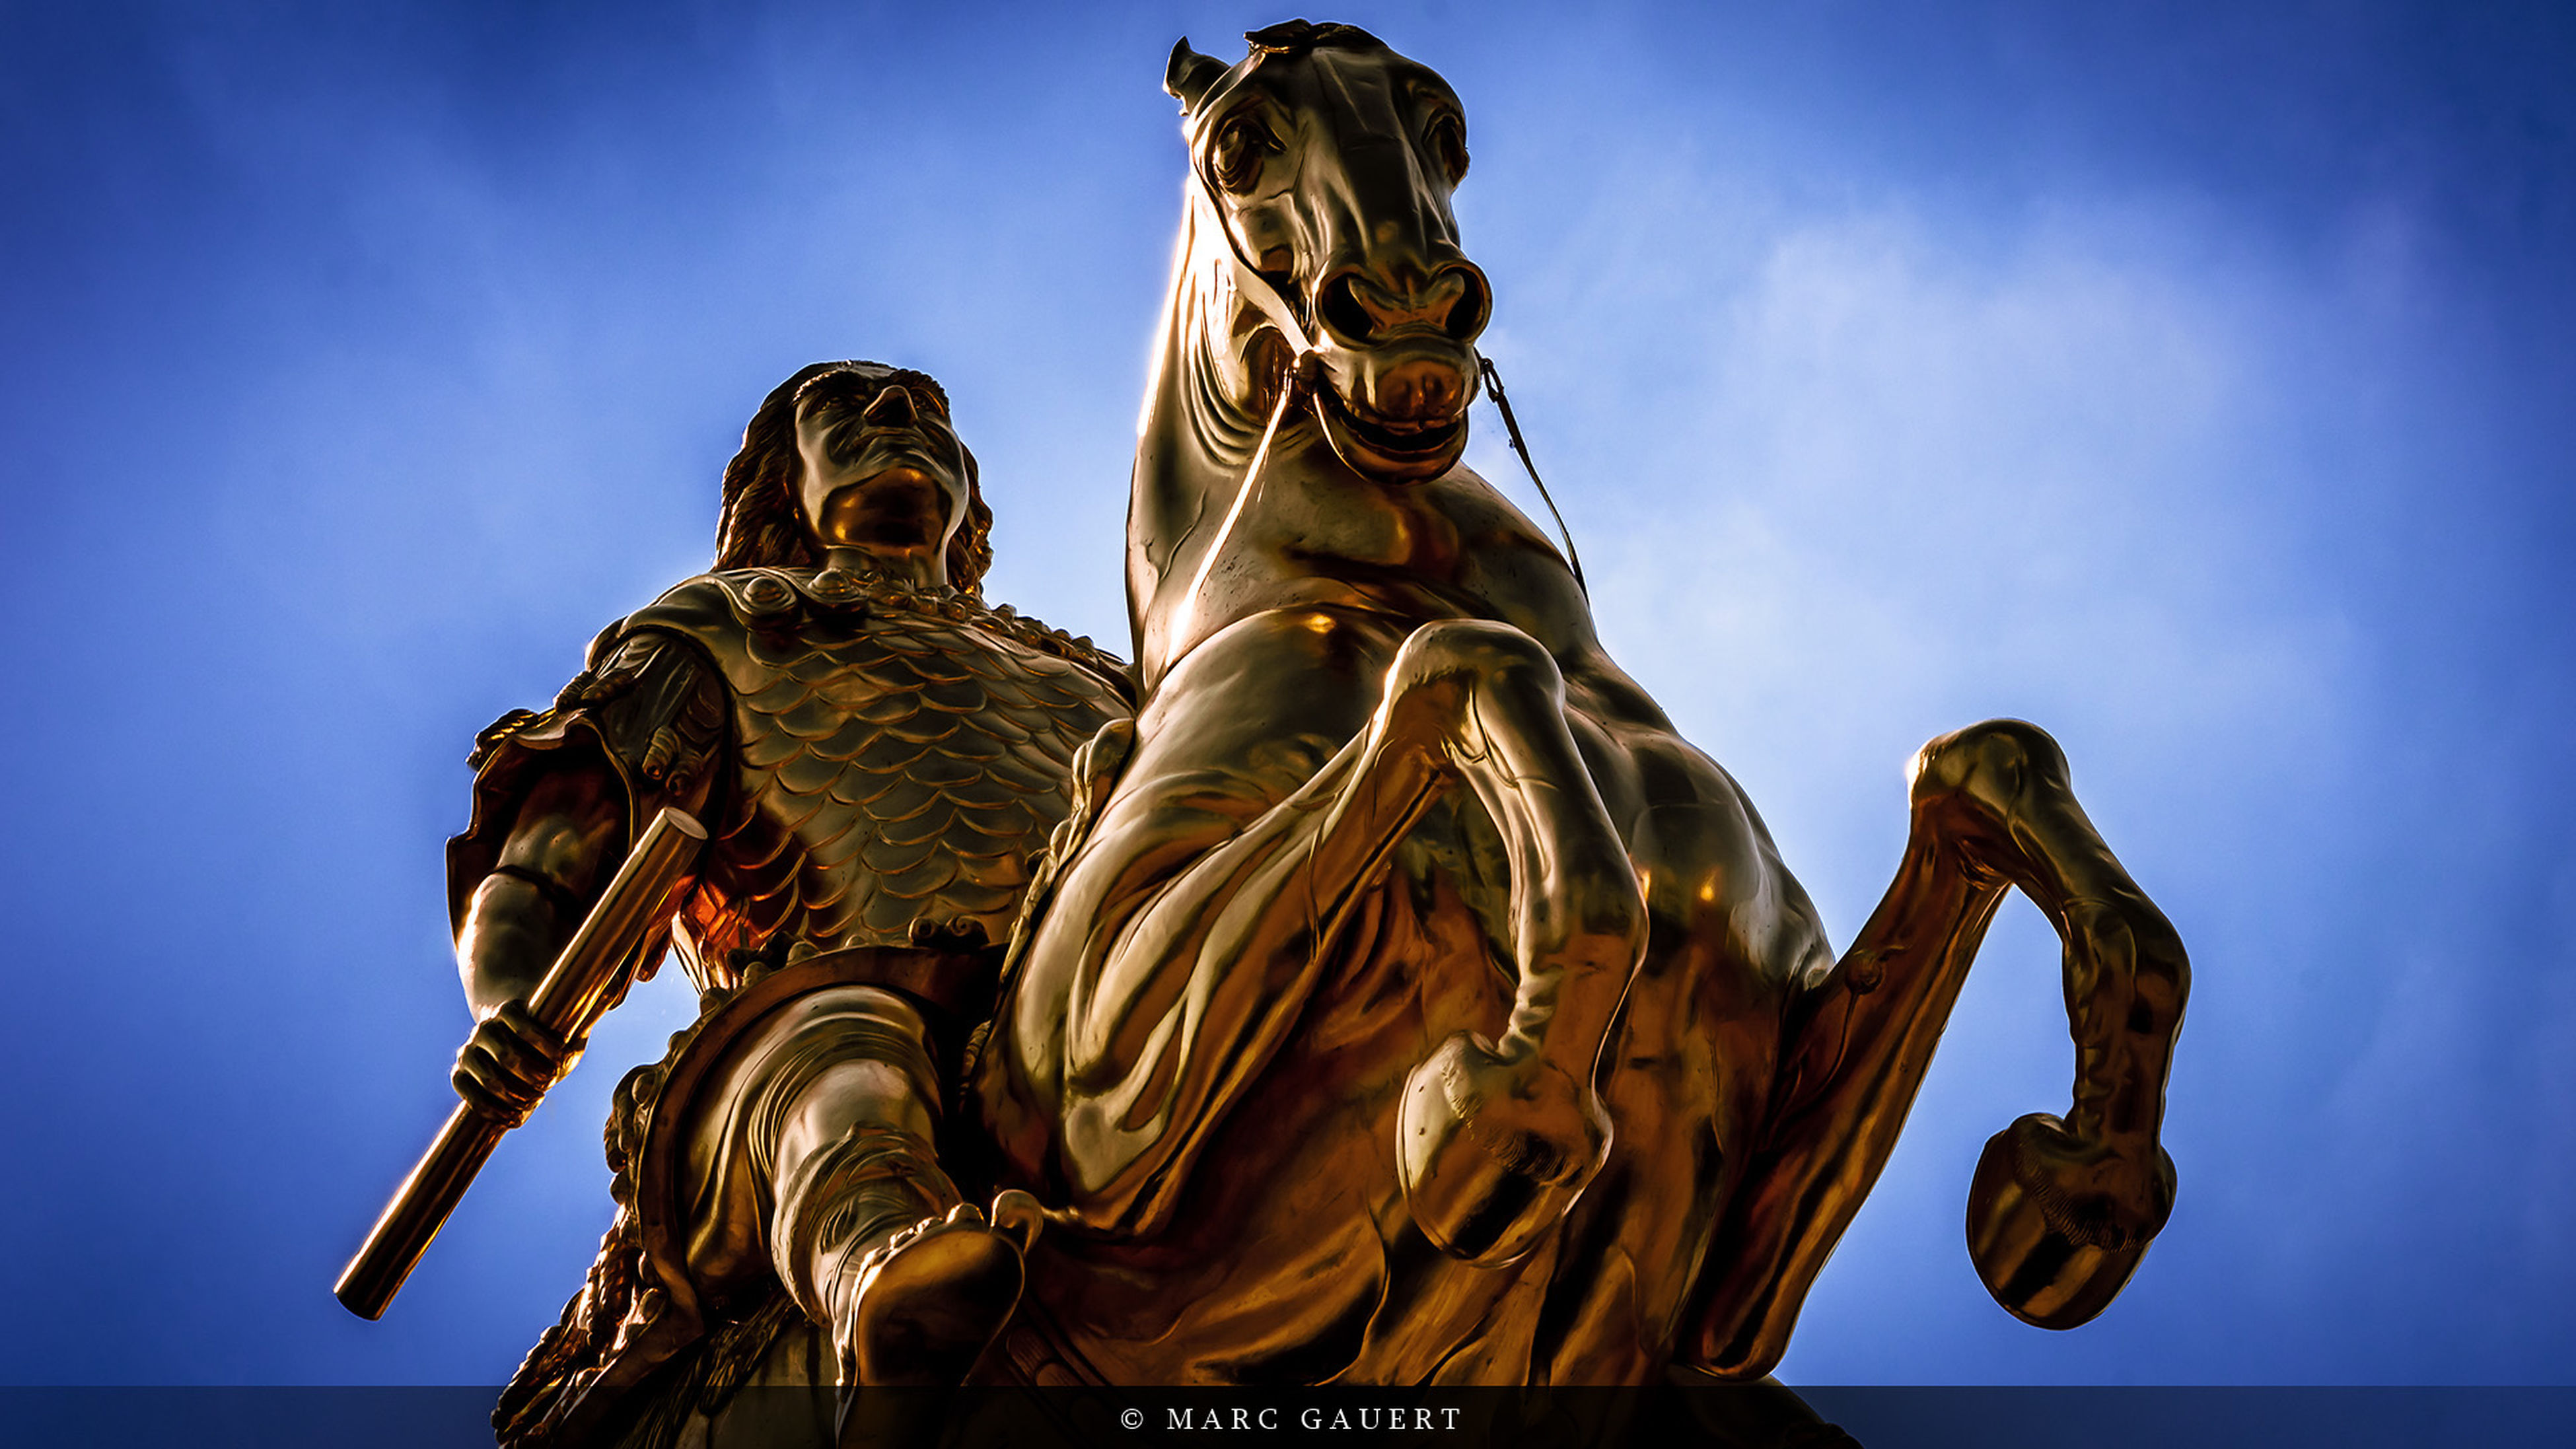 statue, human representation, sculpture, art and craft, art, low angle view, creativity, religion, spirituality, sky, carving - craft product, place of worship, animal representation, famous place, travel destinations, craft, travel